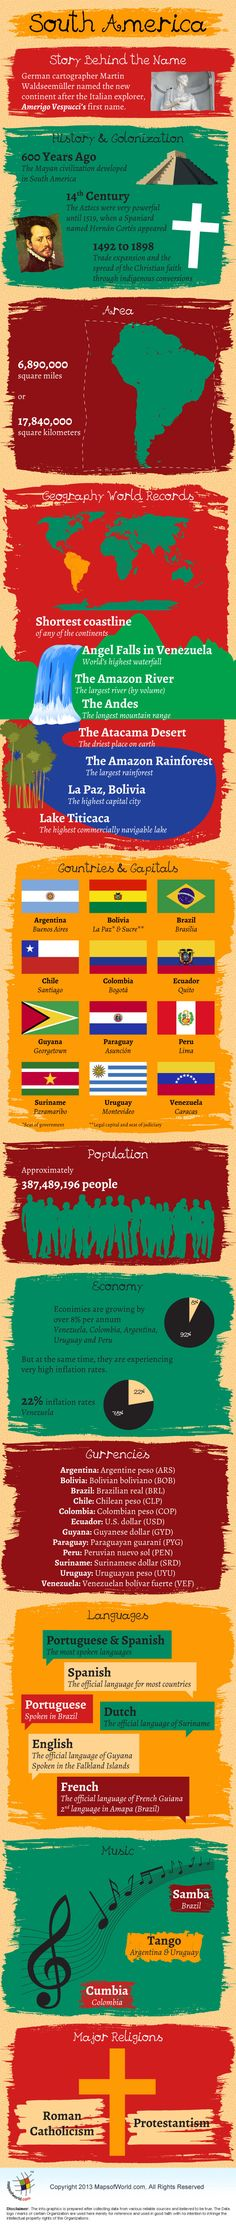 Infographic of South America Facts